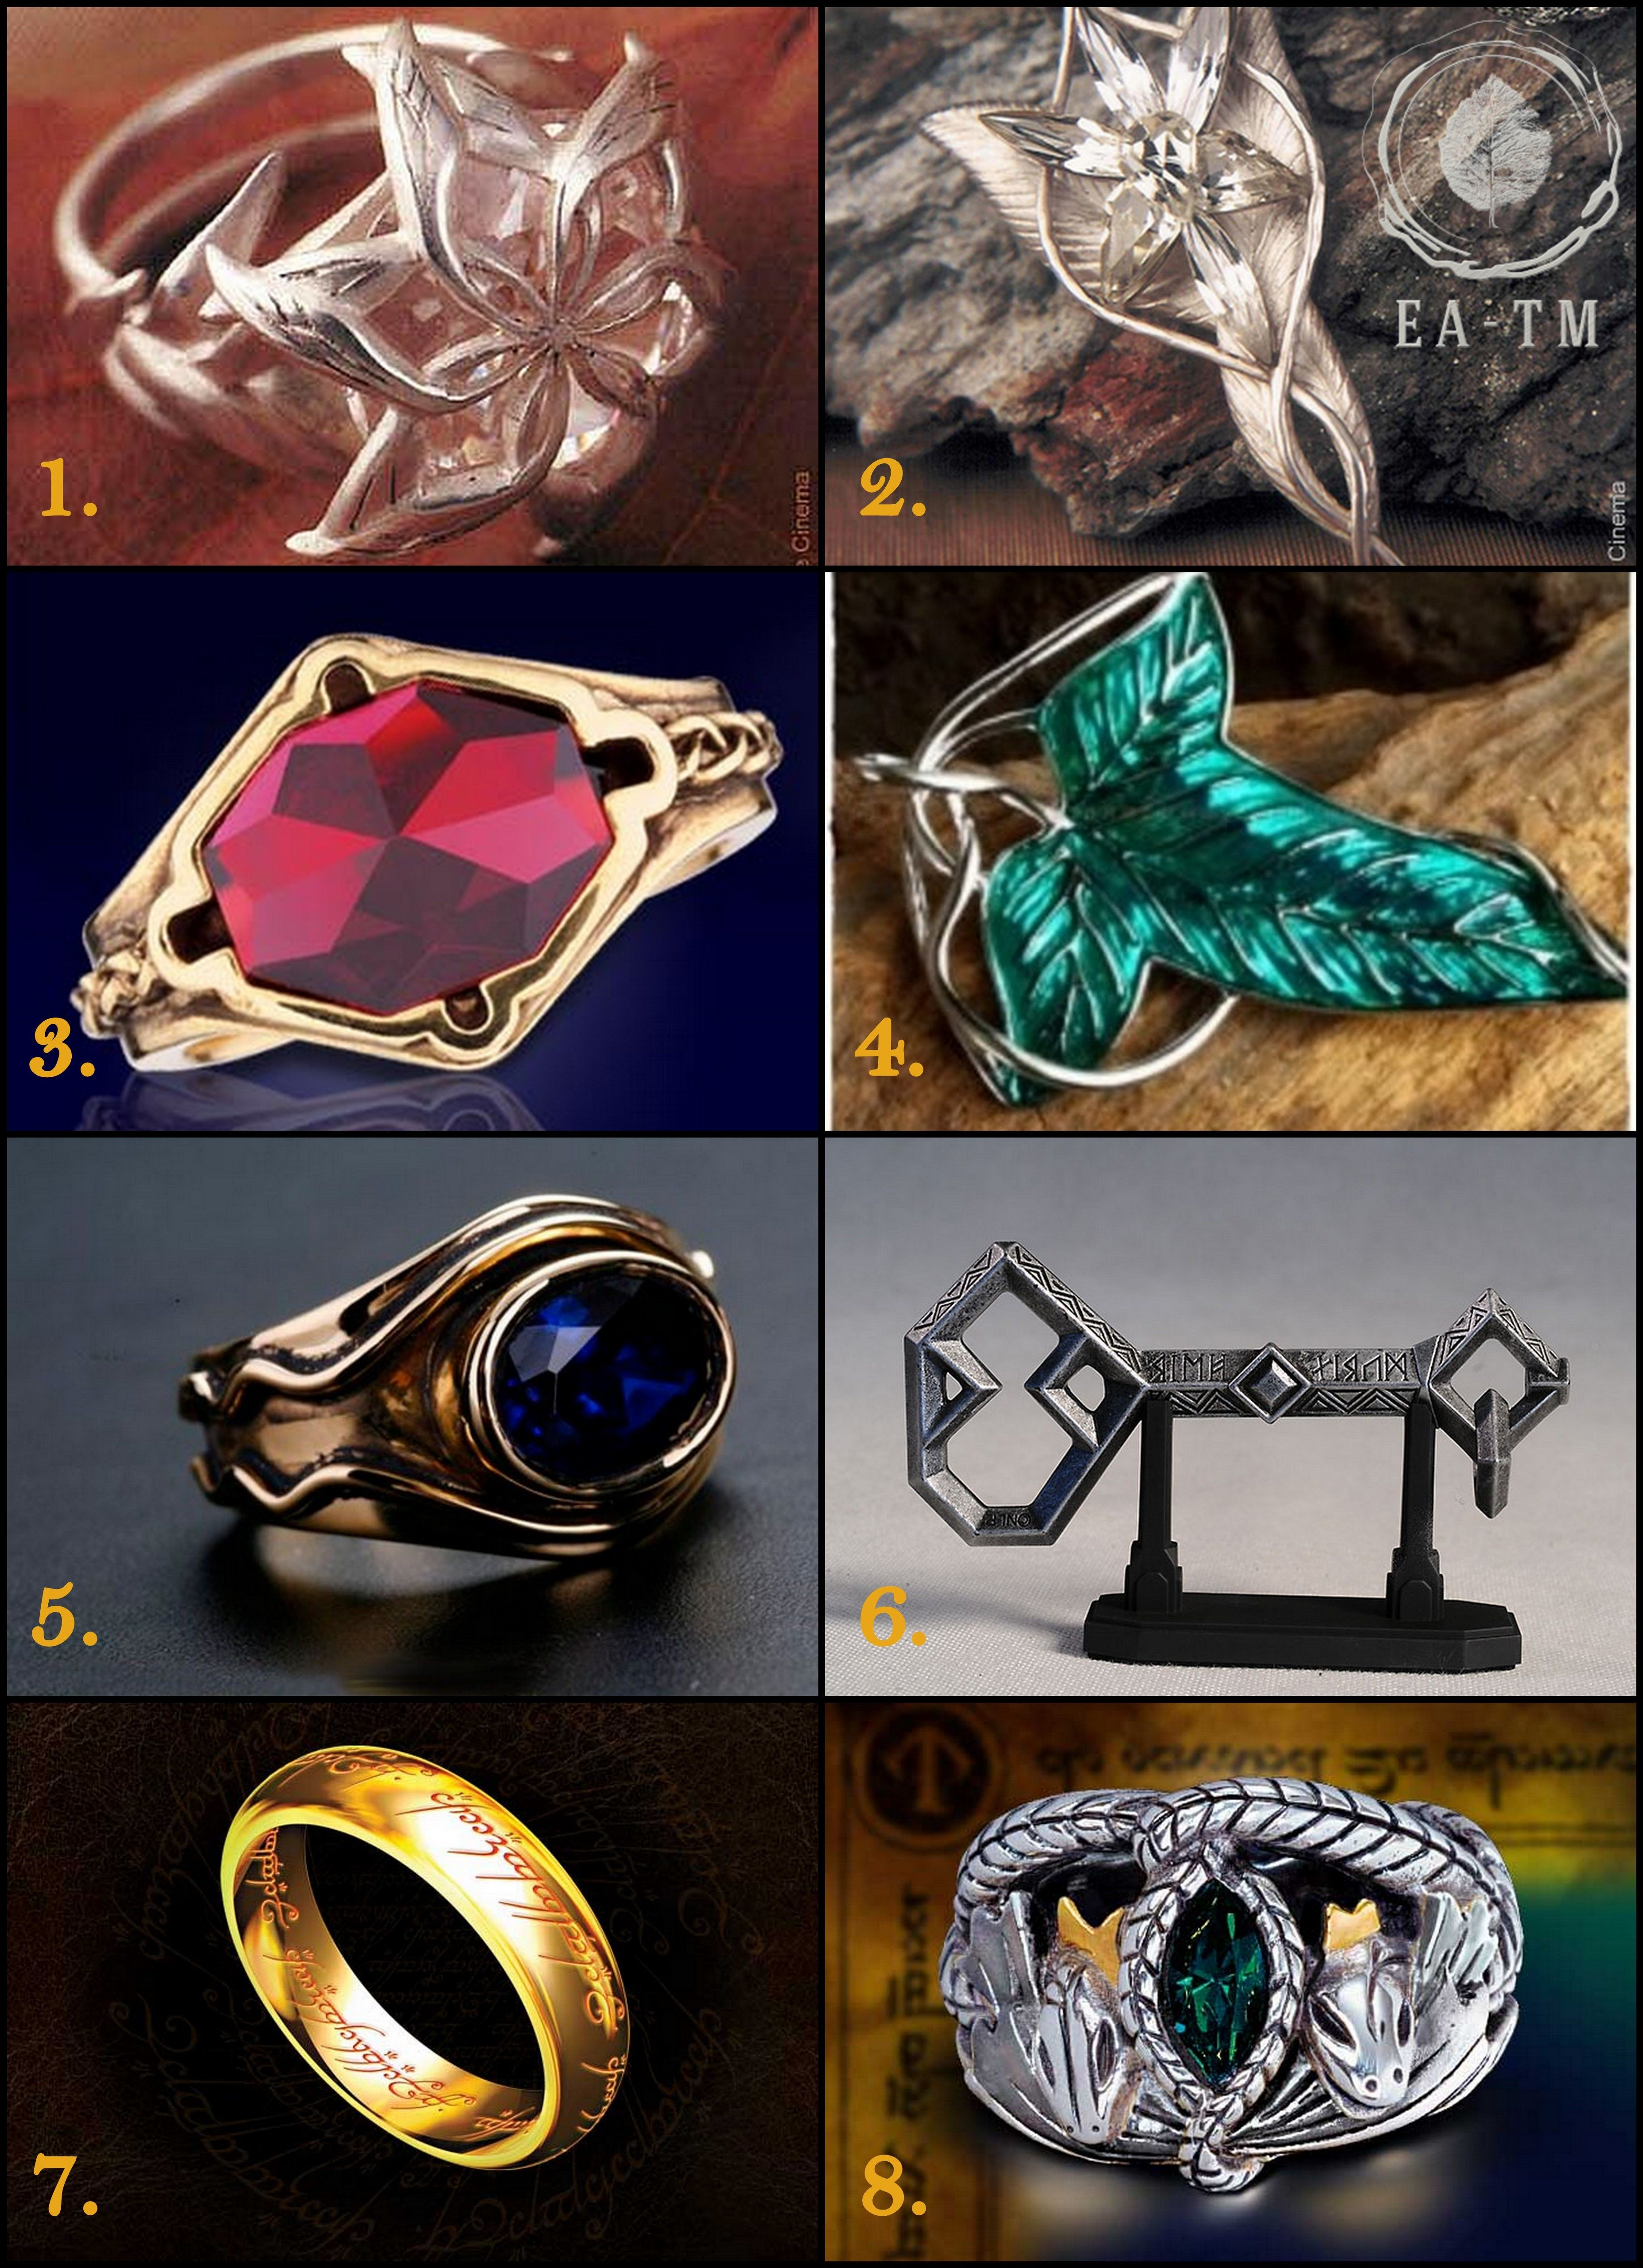 Middle Eart Rings And Jewels 1 Nenya 2 Evenstar 3